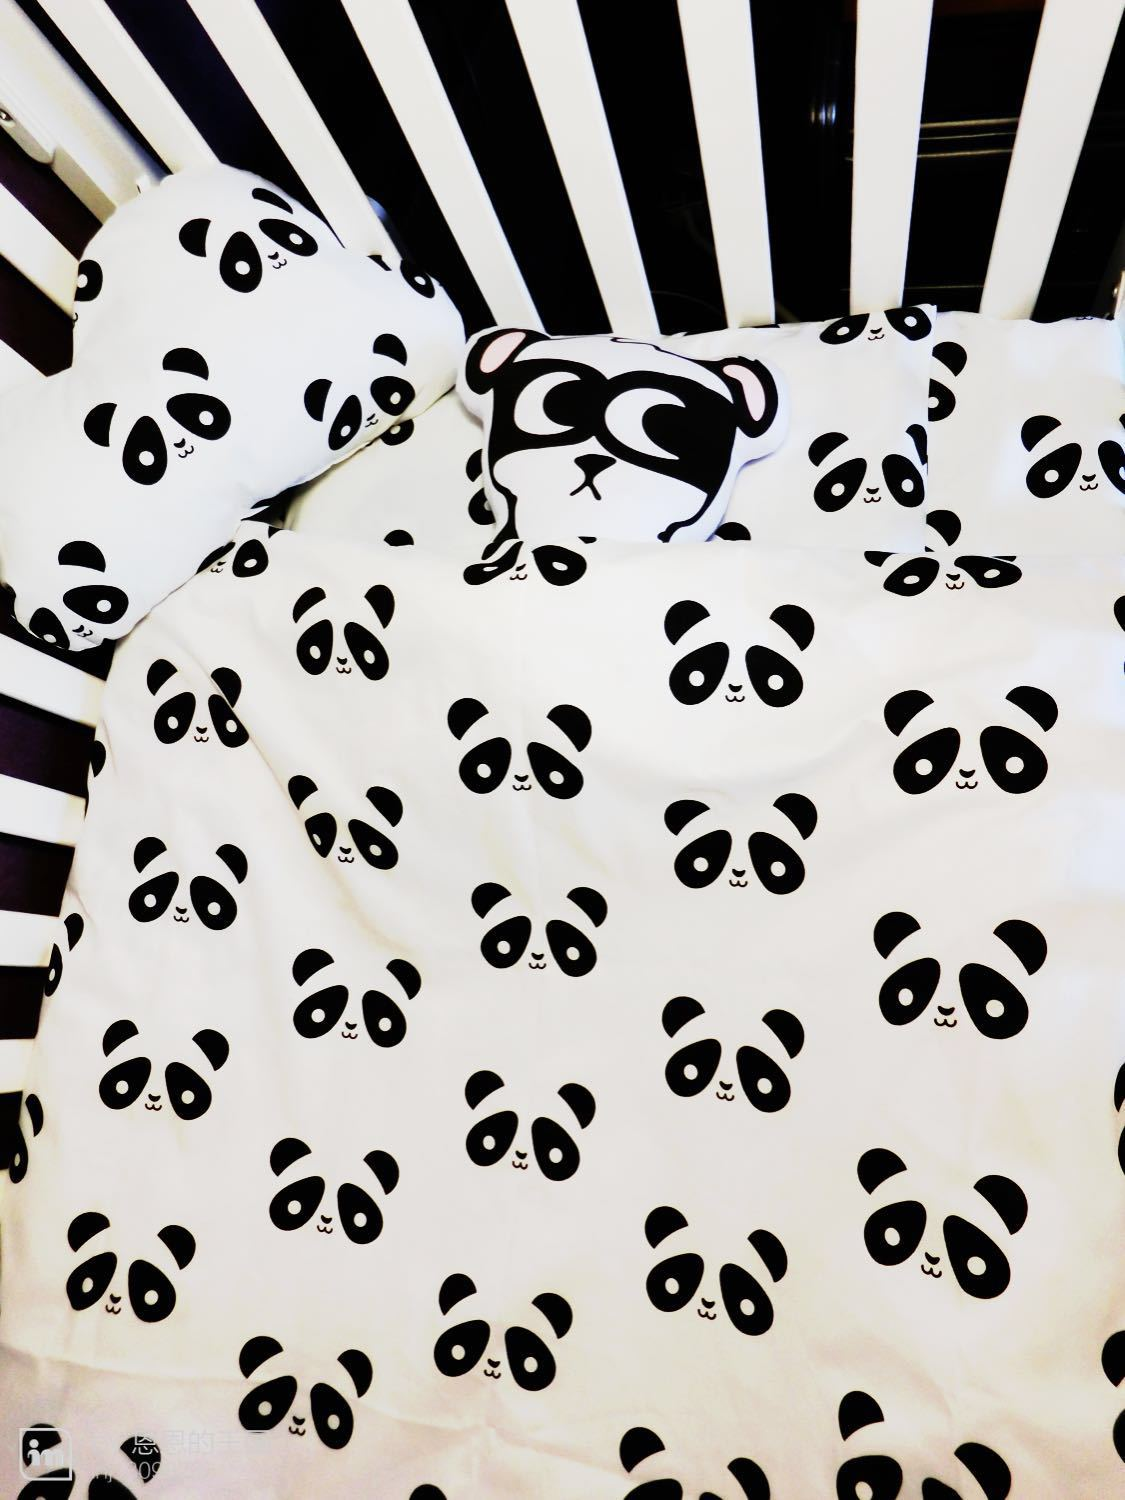 Baby quilts bed covers - 5pcs Sets Cotton Baby Bedding Set Classic Black White Colorcartoon Panda Pillow Case Quilt Cover